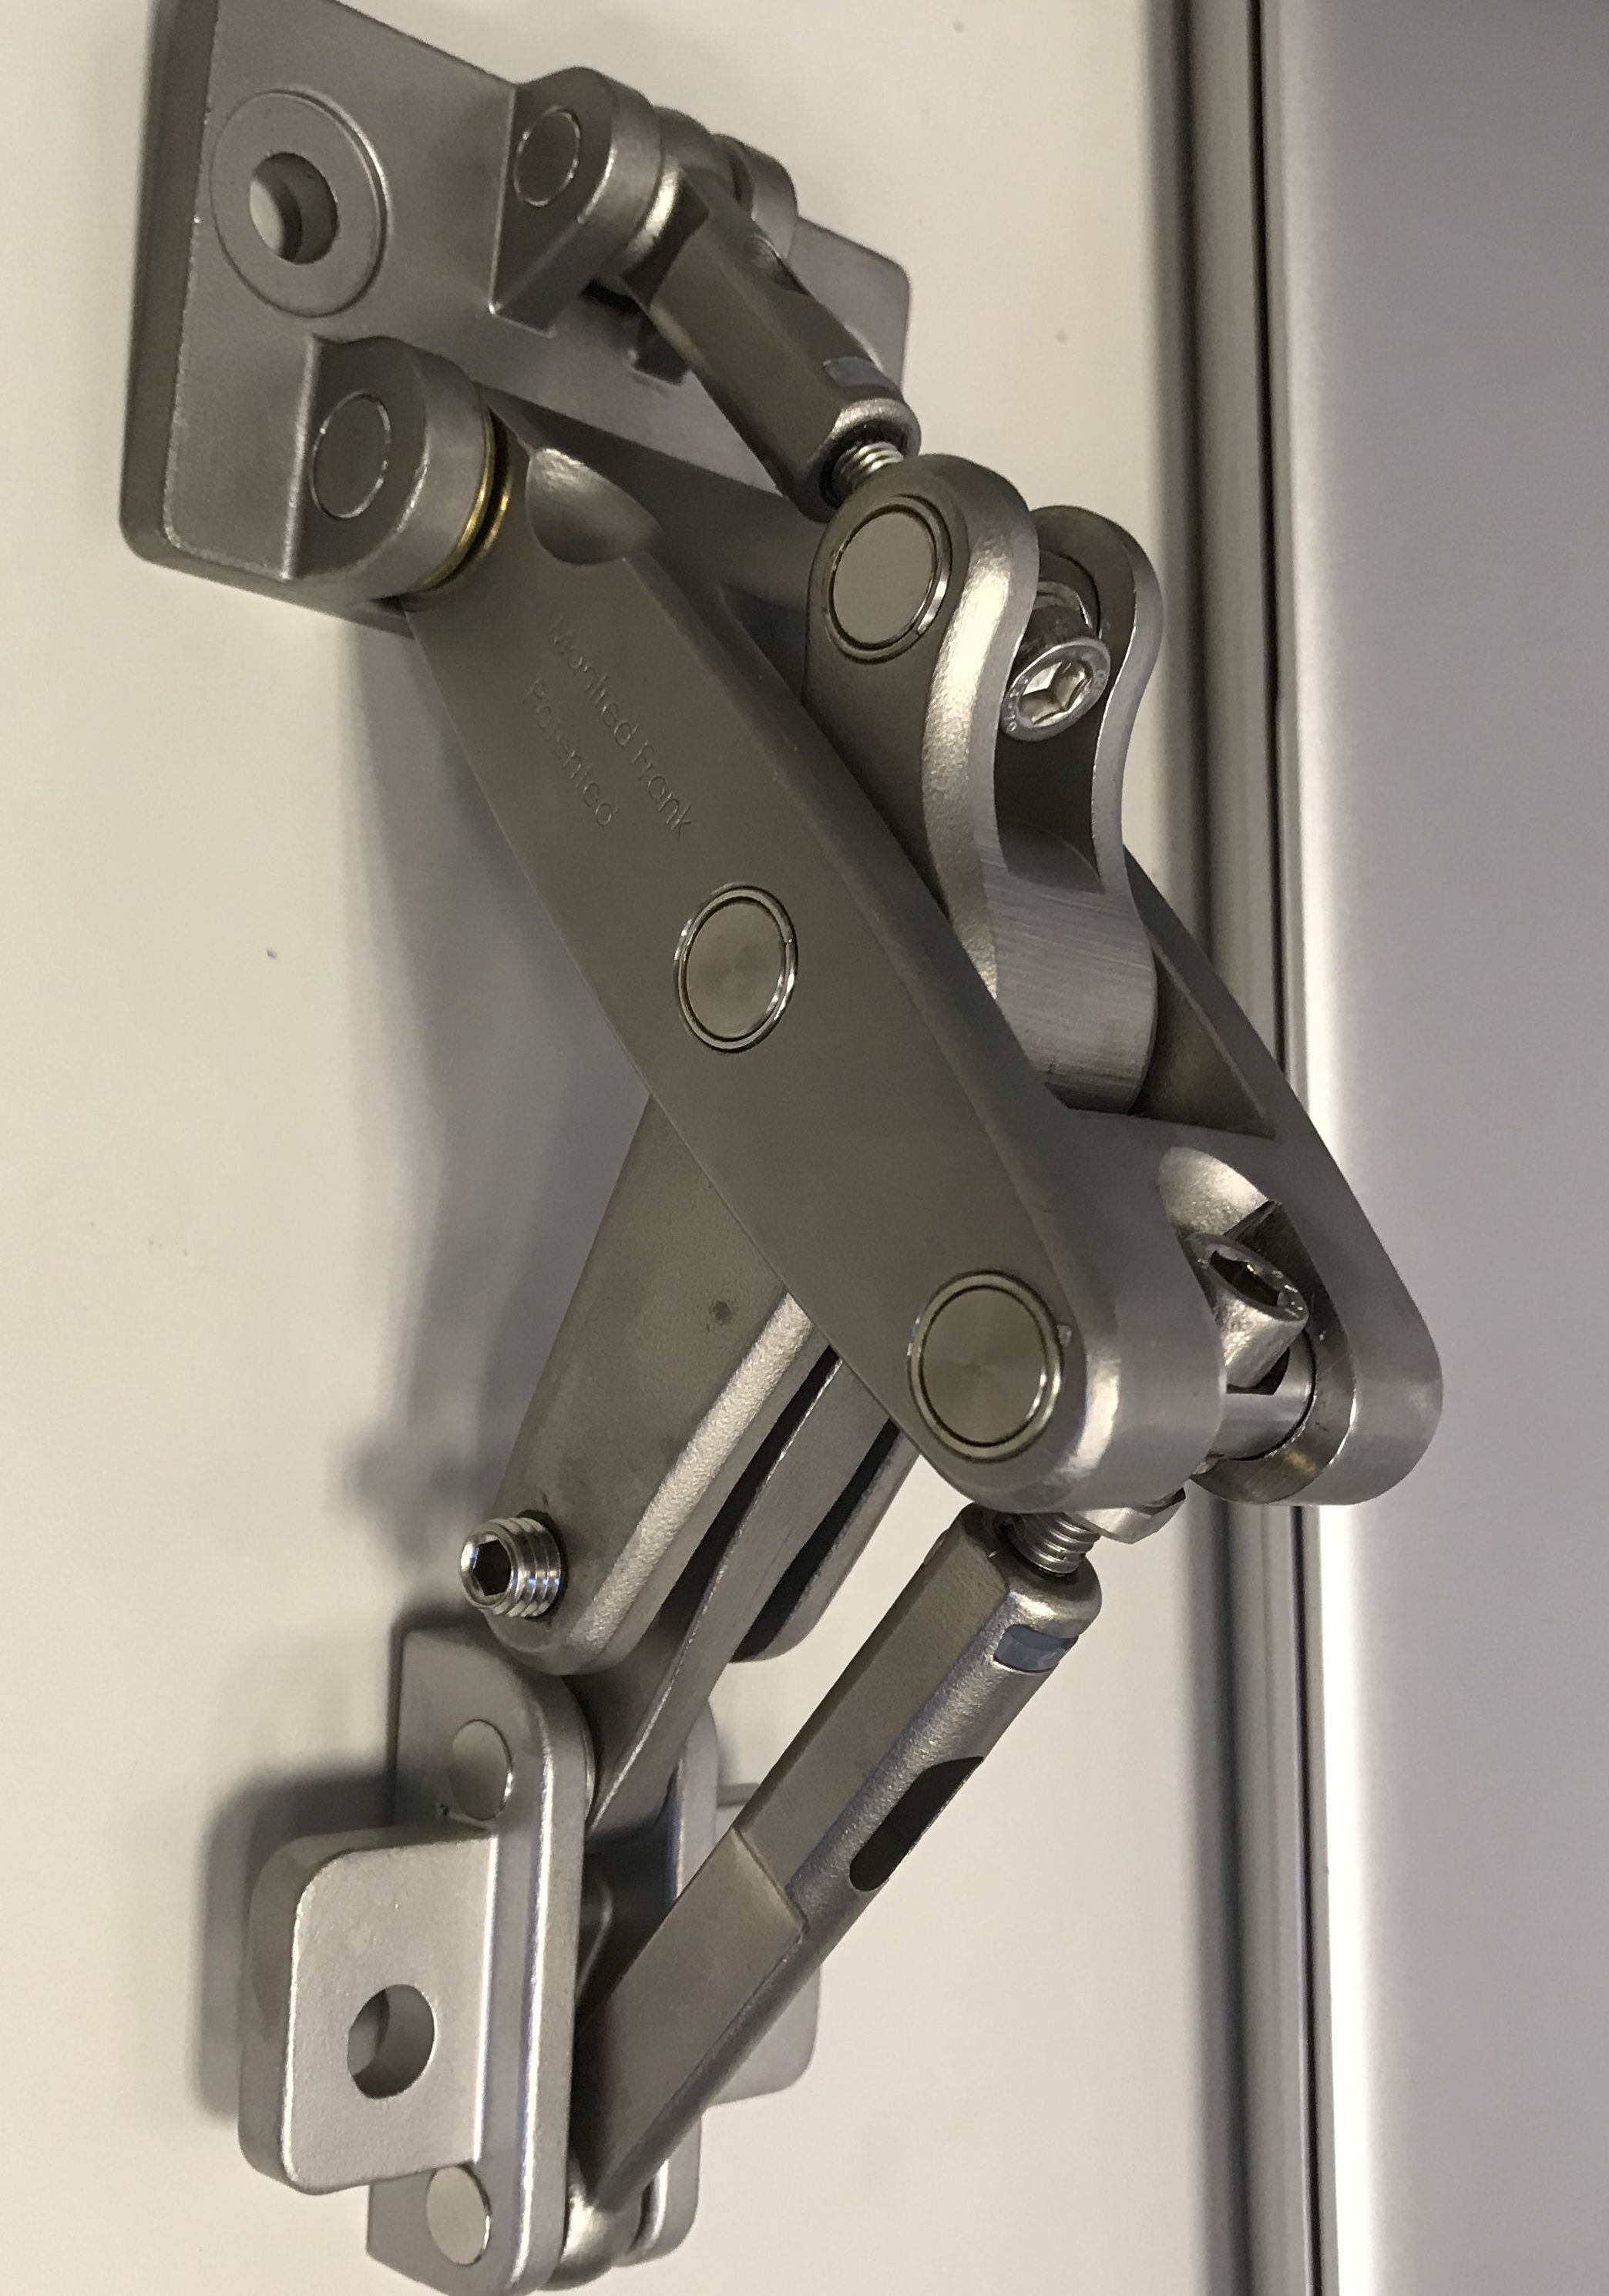 Micromaster 300 In 2020 Mechanical Design Hinges Heavy Duty Hinges